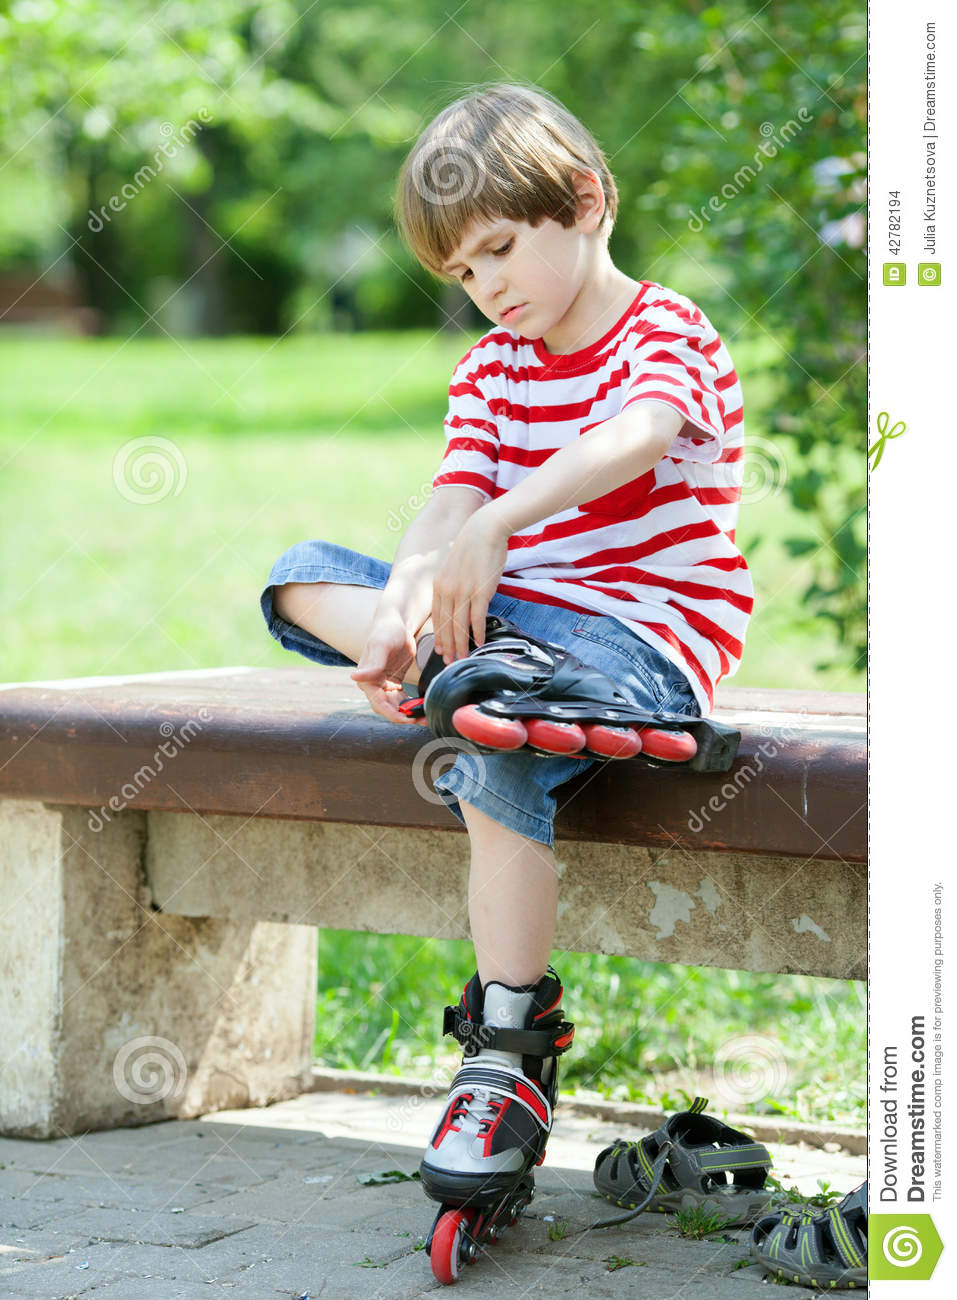 The Kid Put On Roller Skates Stock Photo